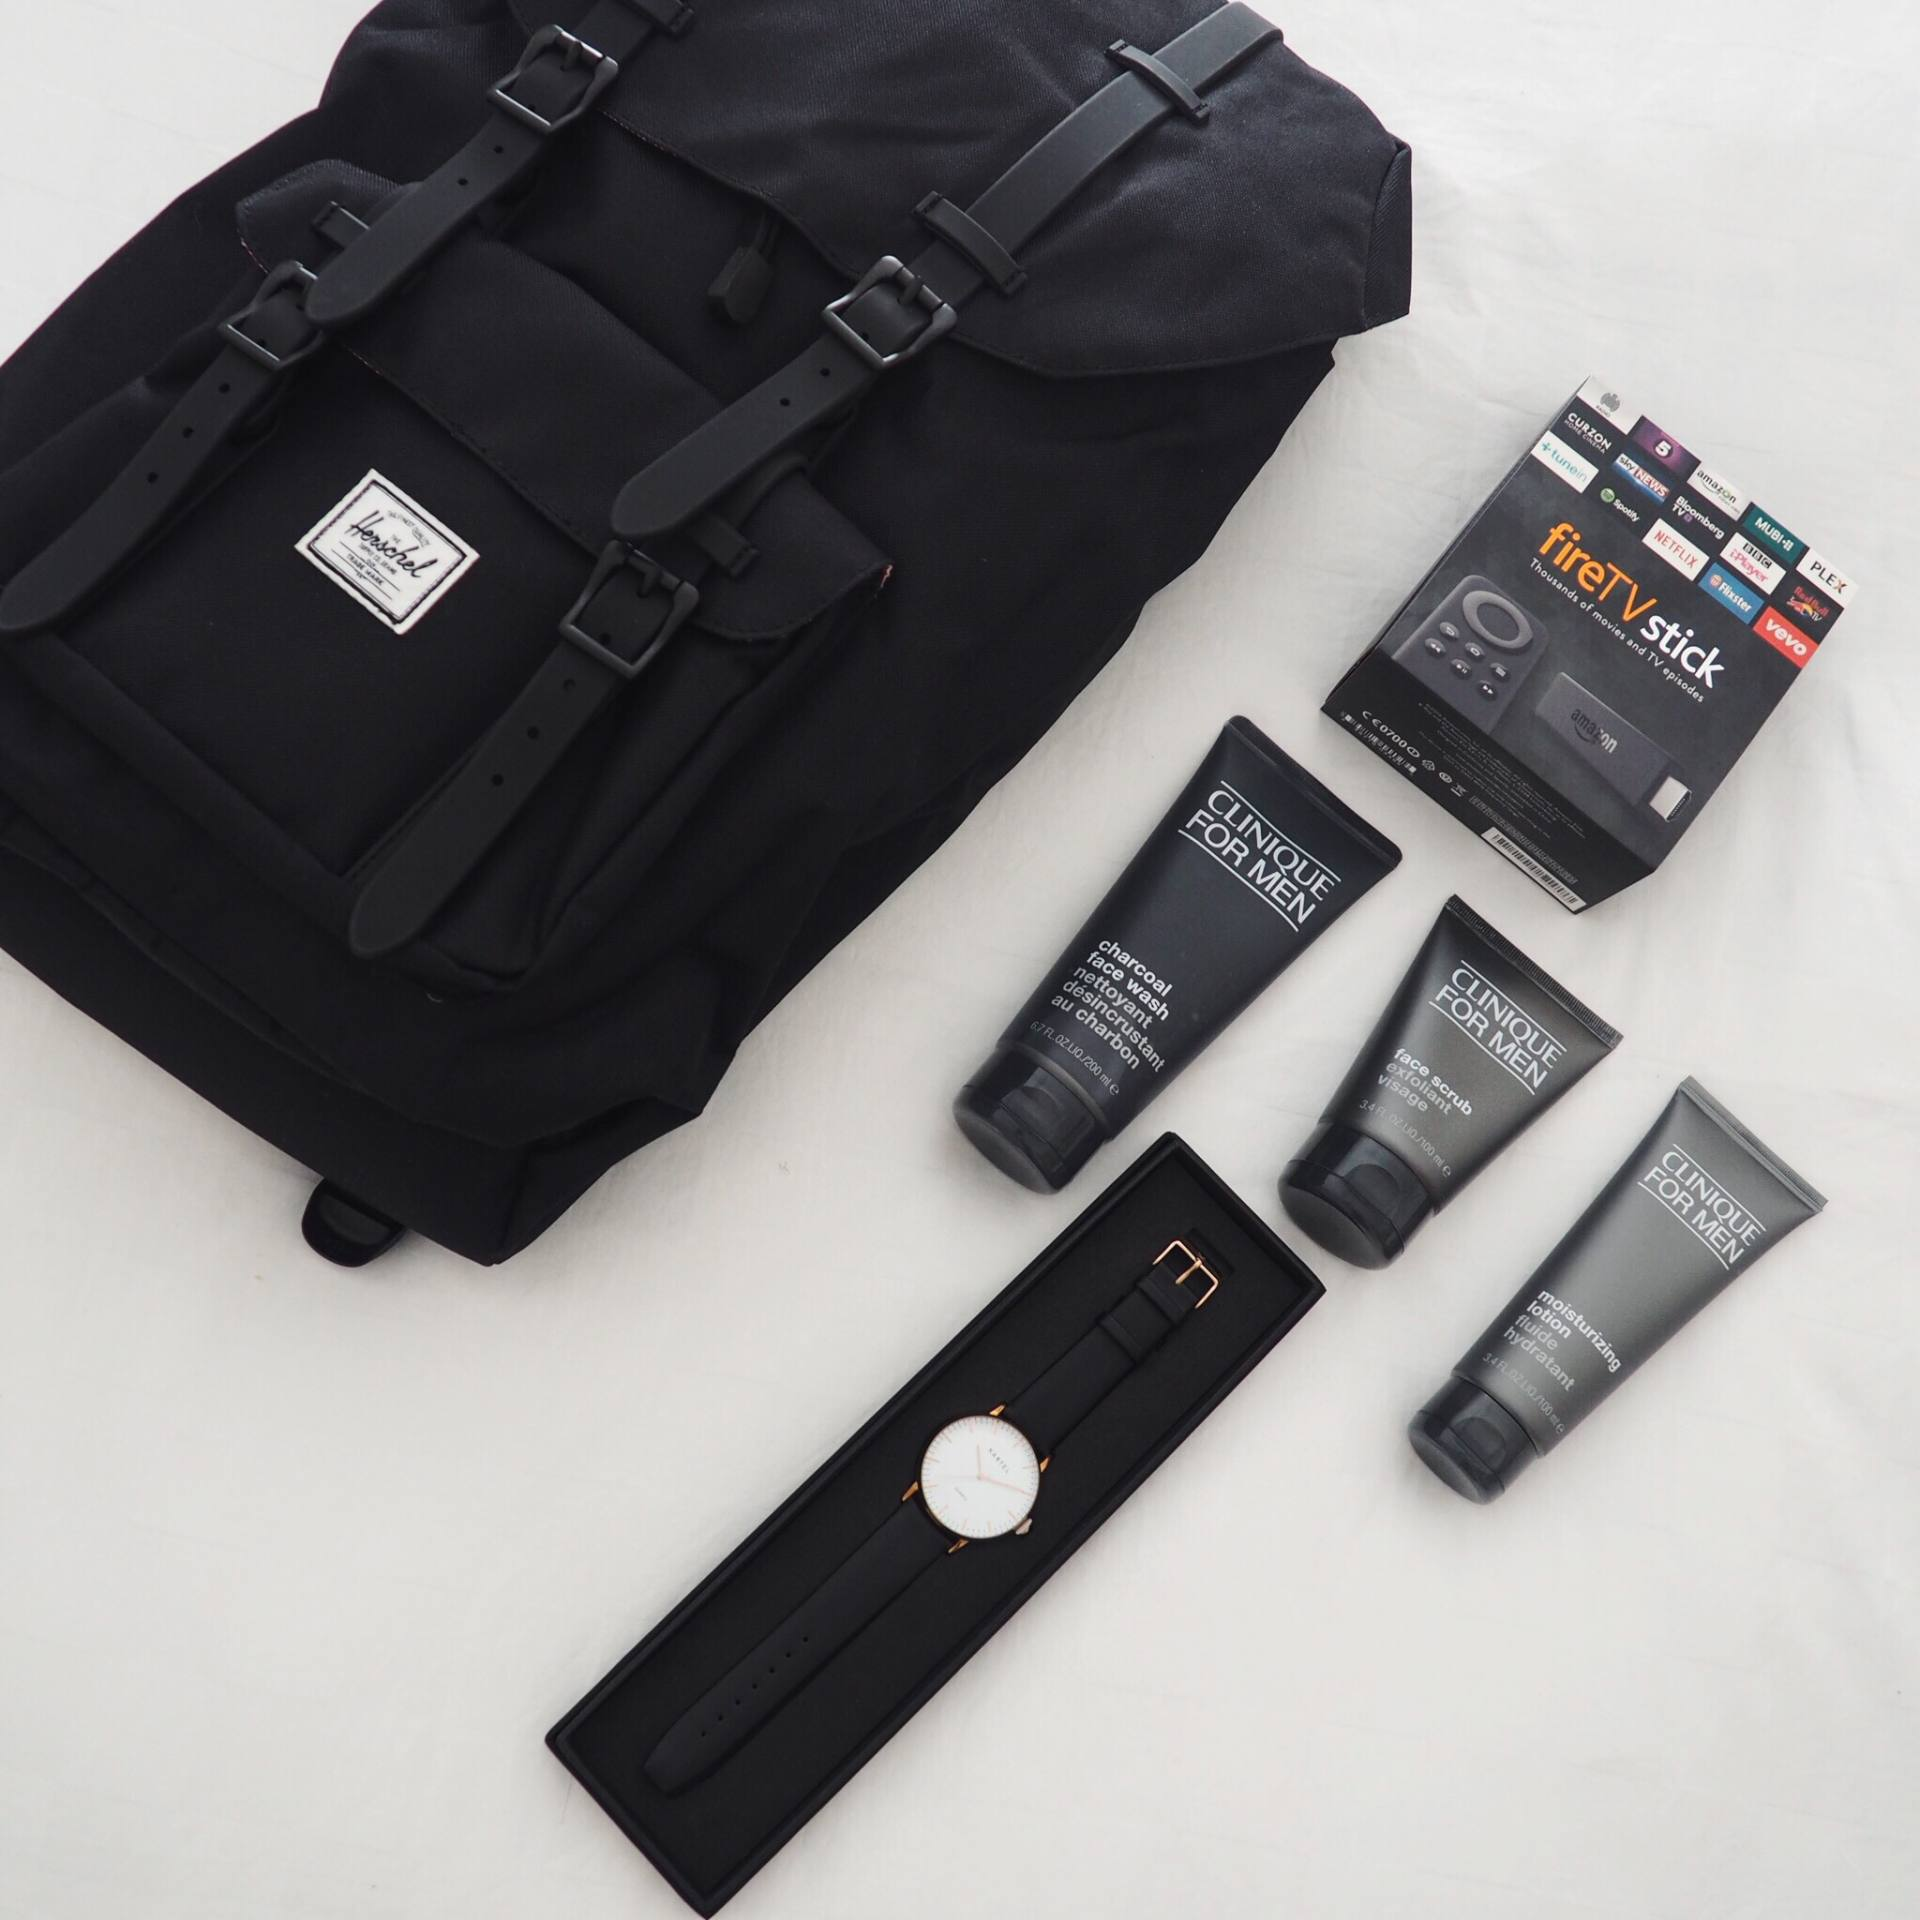 Birthday Gift Ideas Including A Herschel Supply Co Backpack Kartel Watch Amazon Fire Stick